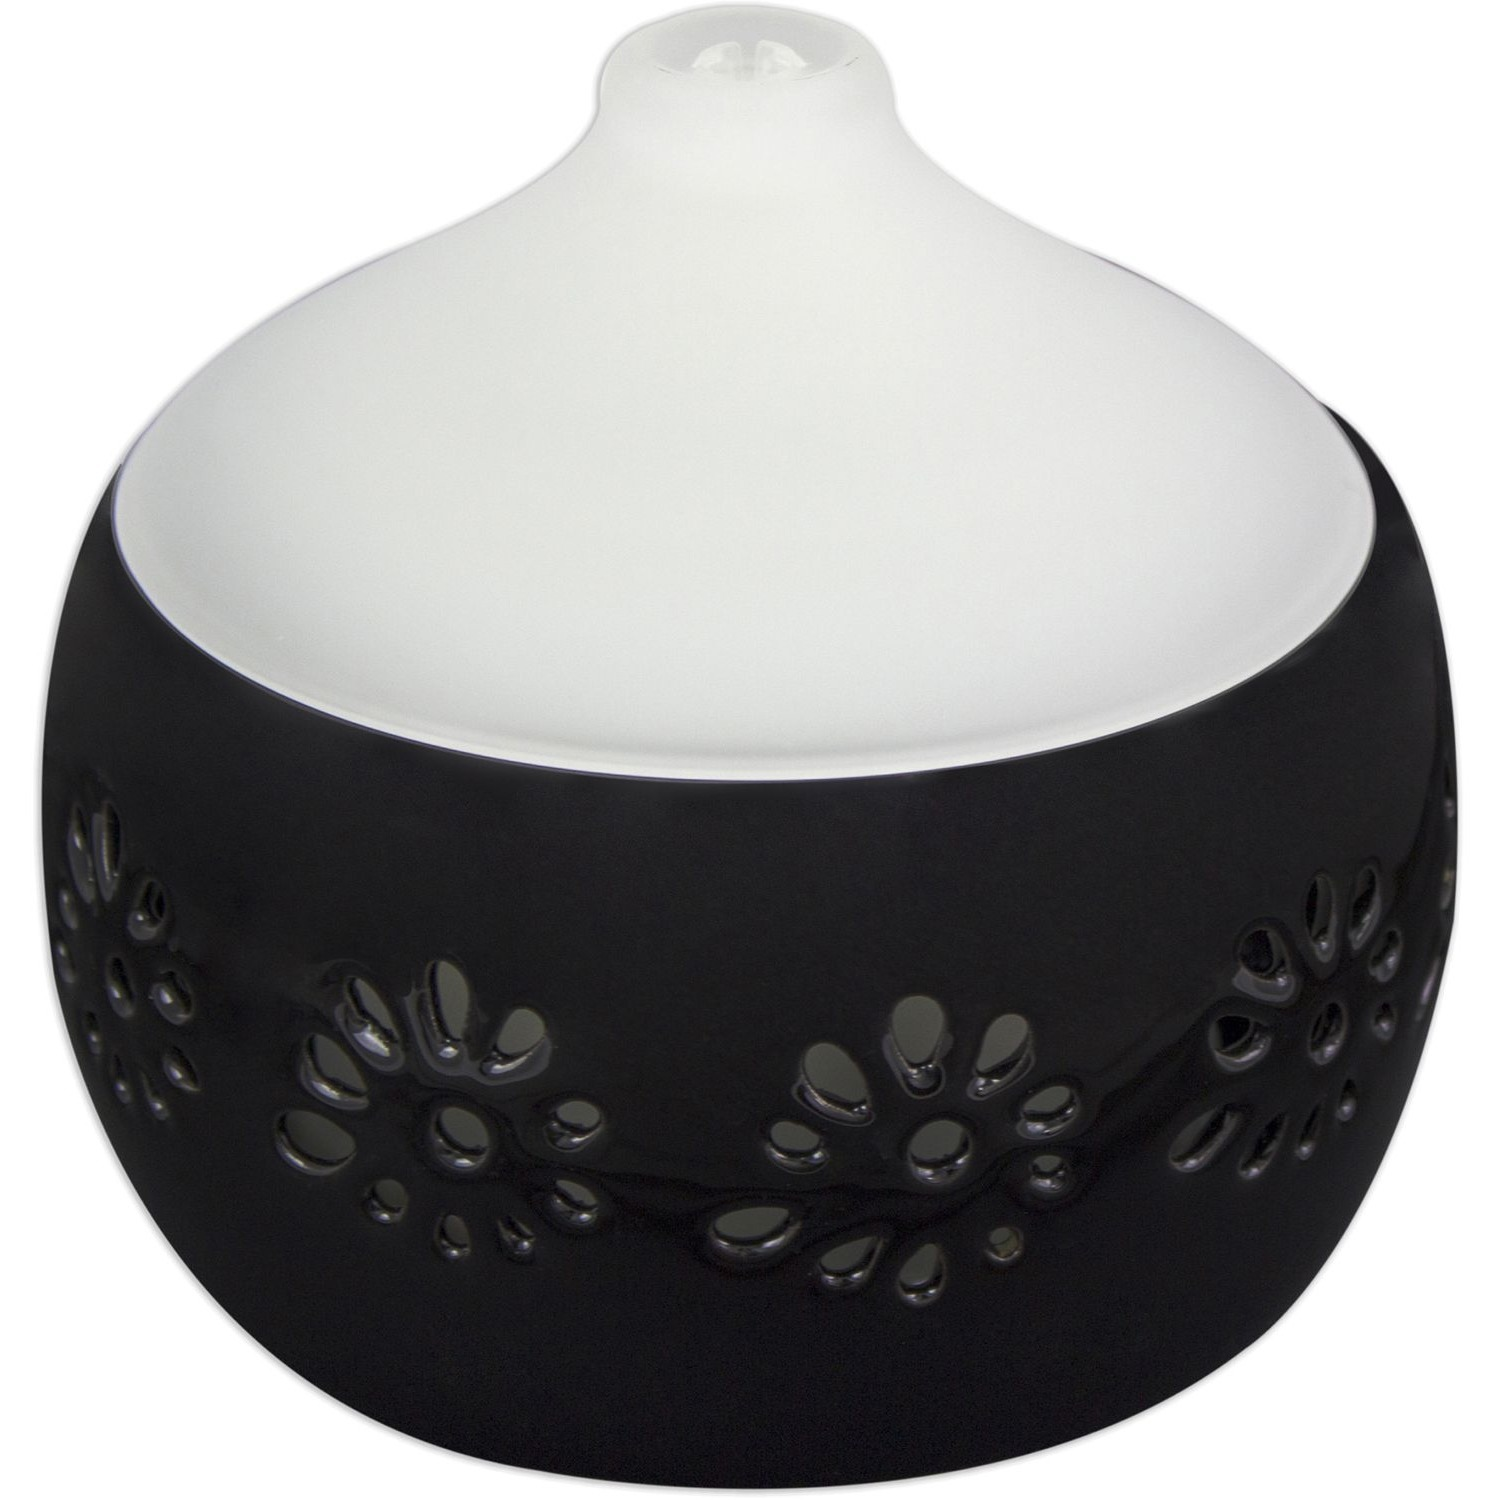 Nesco Unique Design Ceramic Diffuser Walmart Com Walmart Com